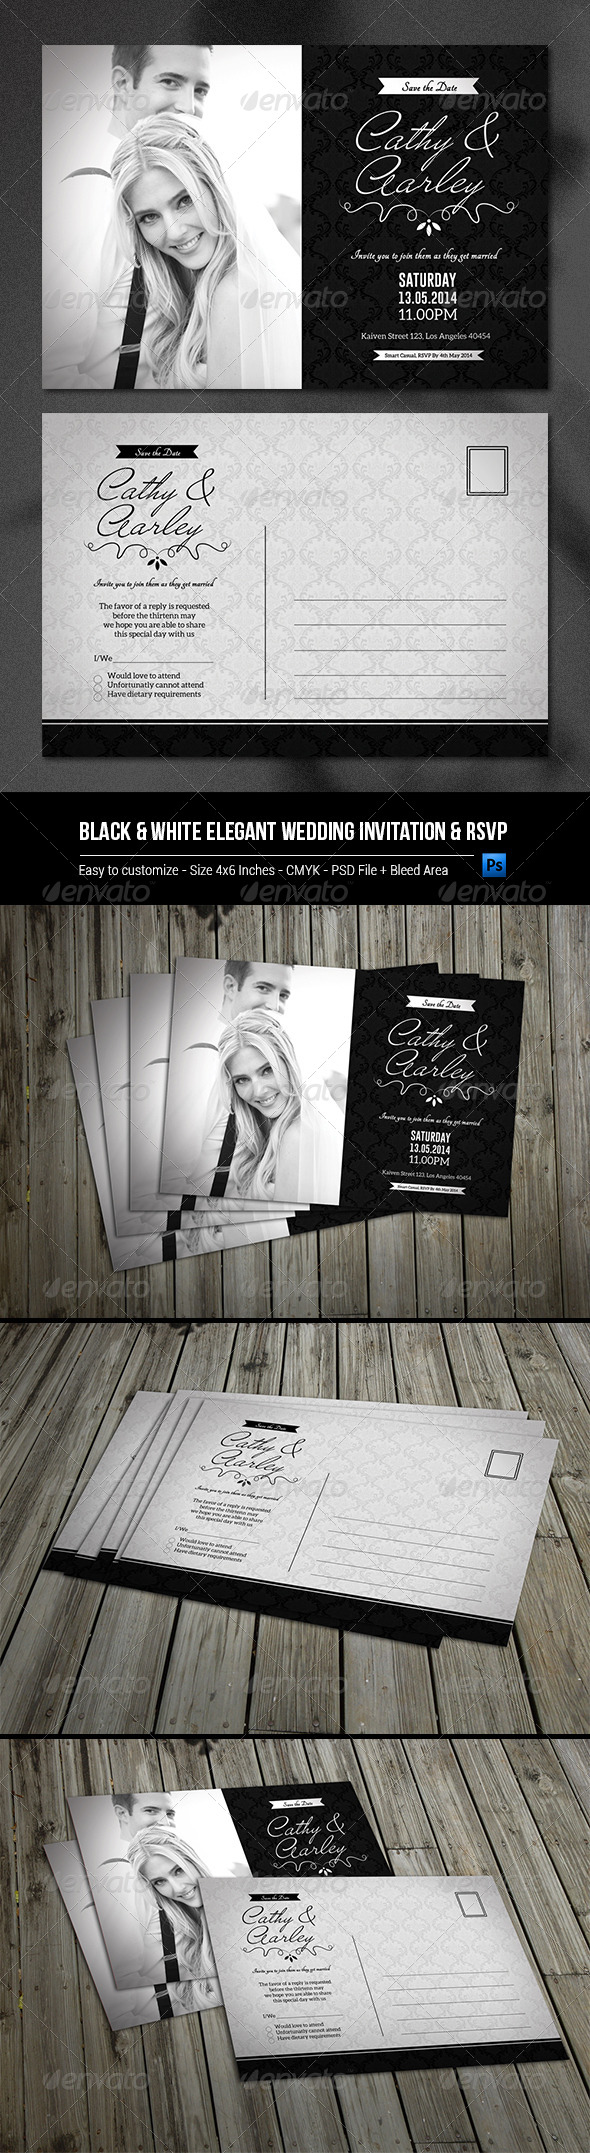 GraphicRiver Black & White Elegant Wedding Invitation & RSVP 8055853